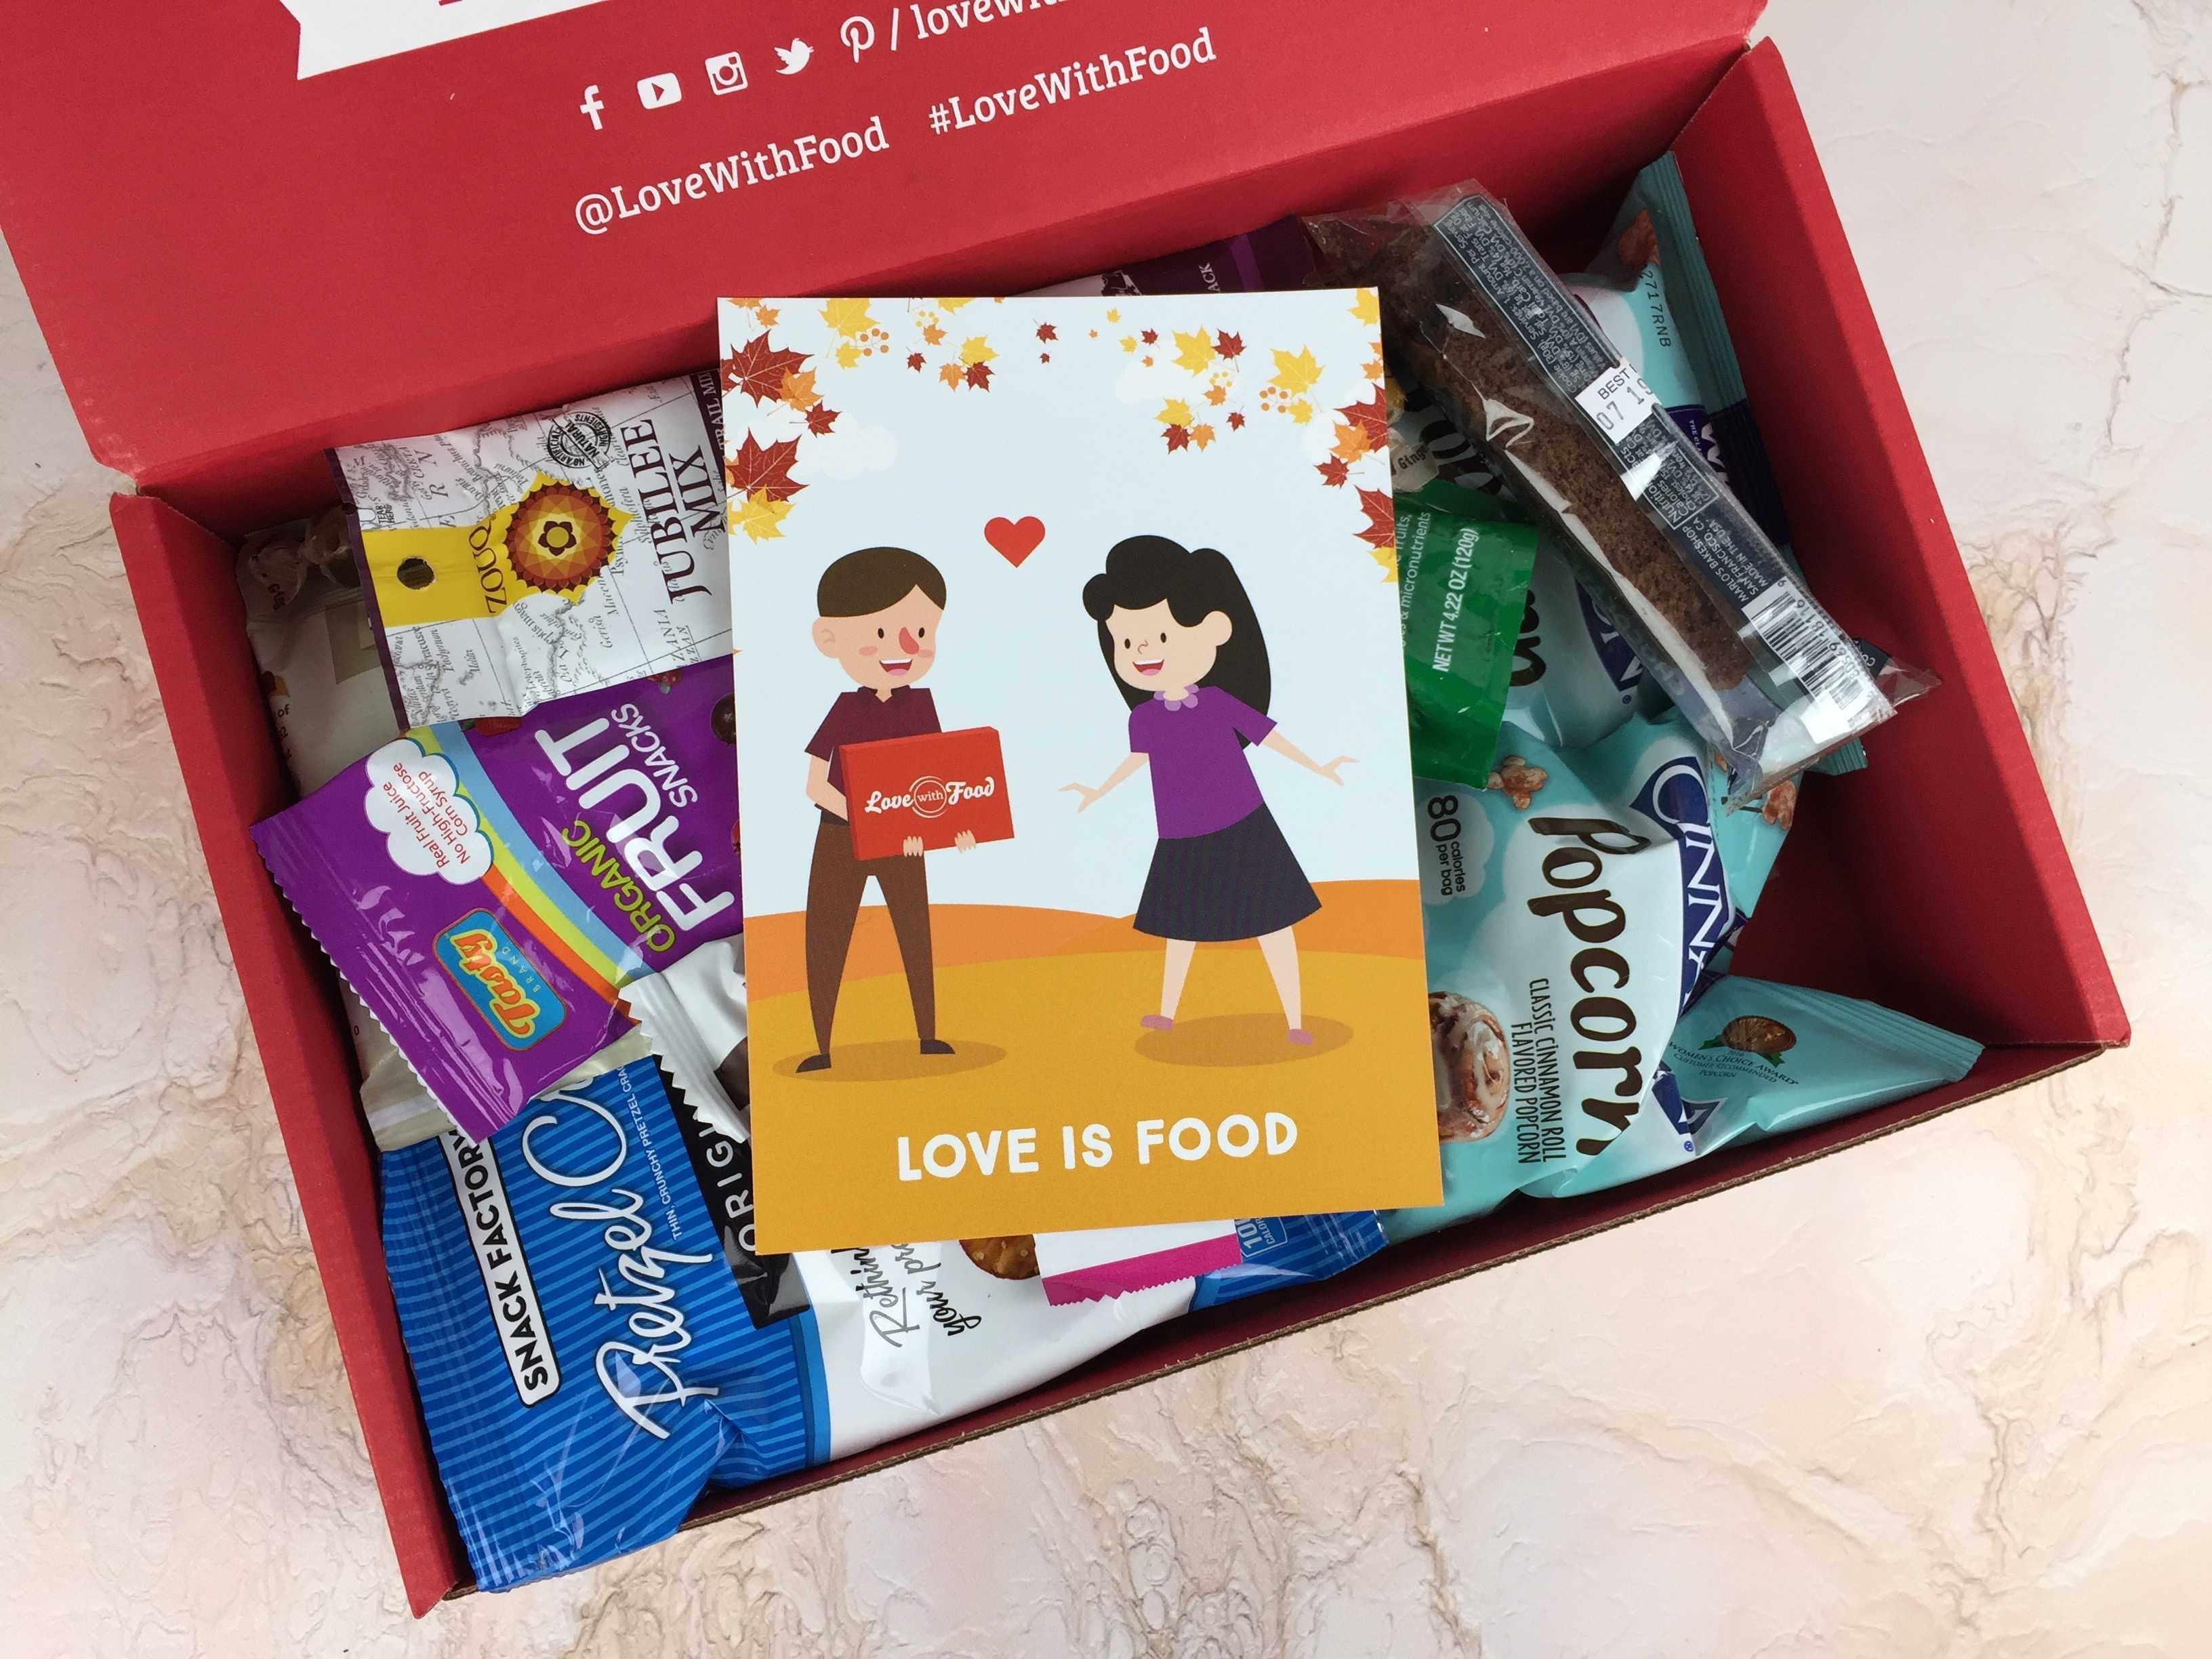 Love With Food November 2016 Deluxe Box Review + Coupon